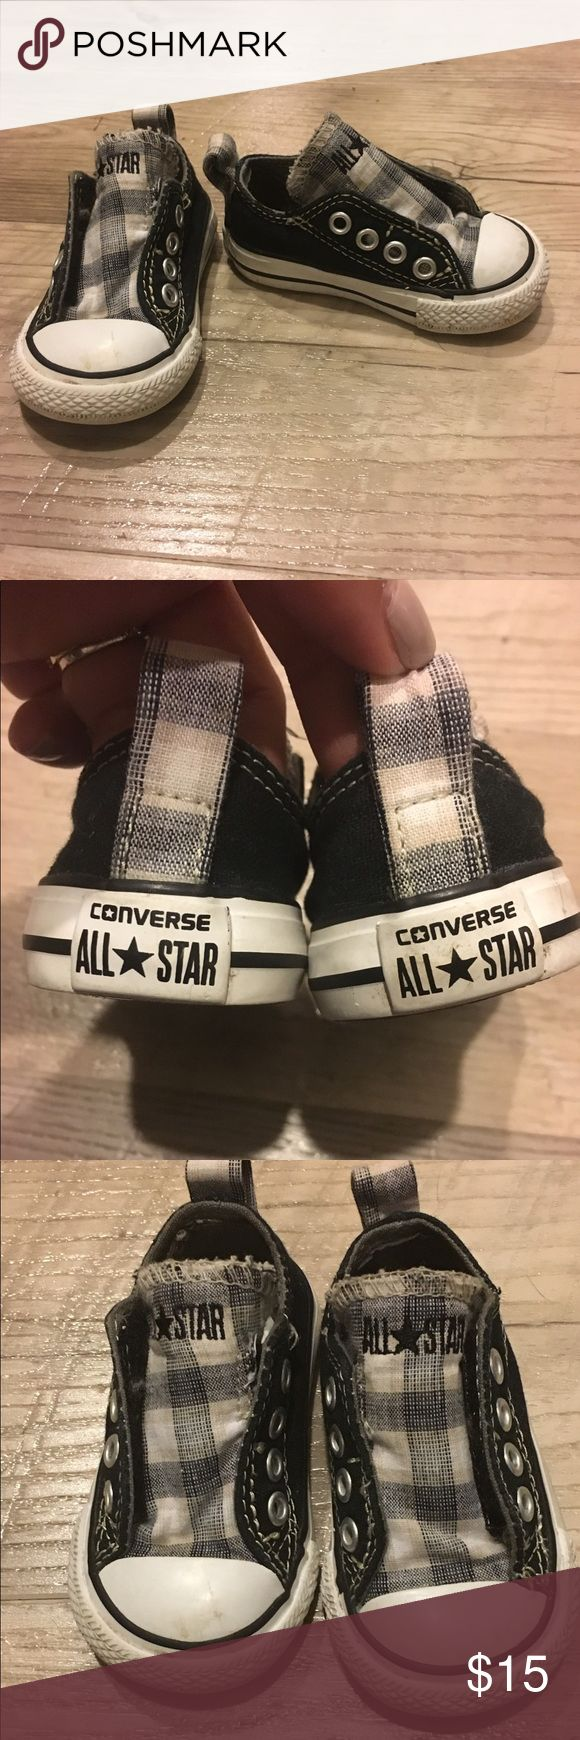 Converse slip ons with velcro Black and white infant size 3 converse slip ons. Side velcro for easy slip on. Worn a few times. Converse Shoes Sneakers